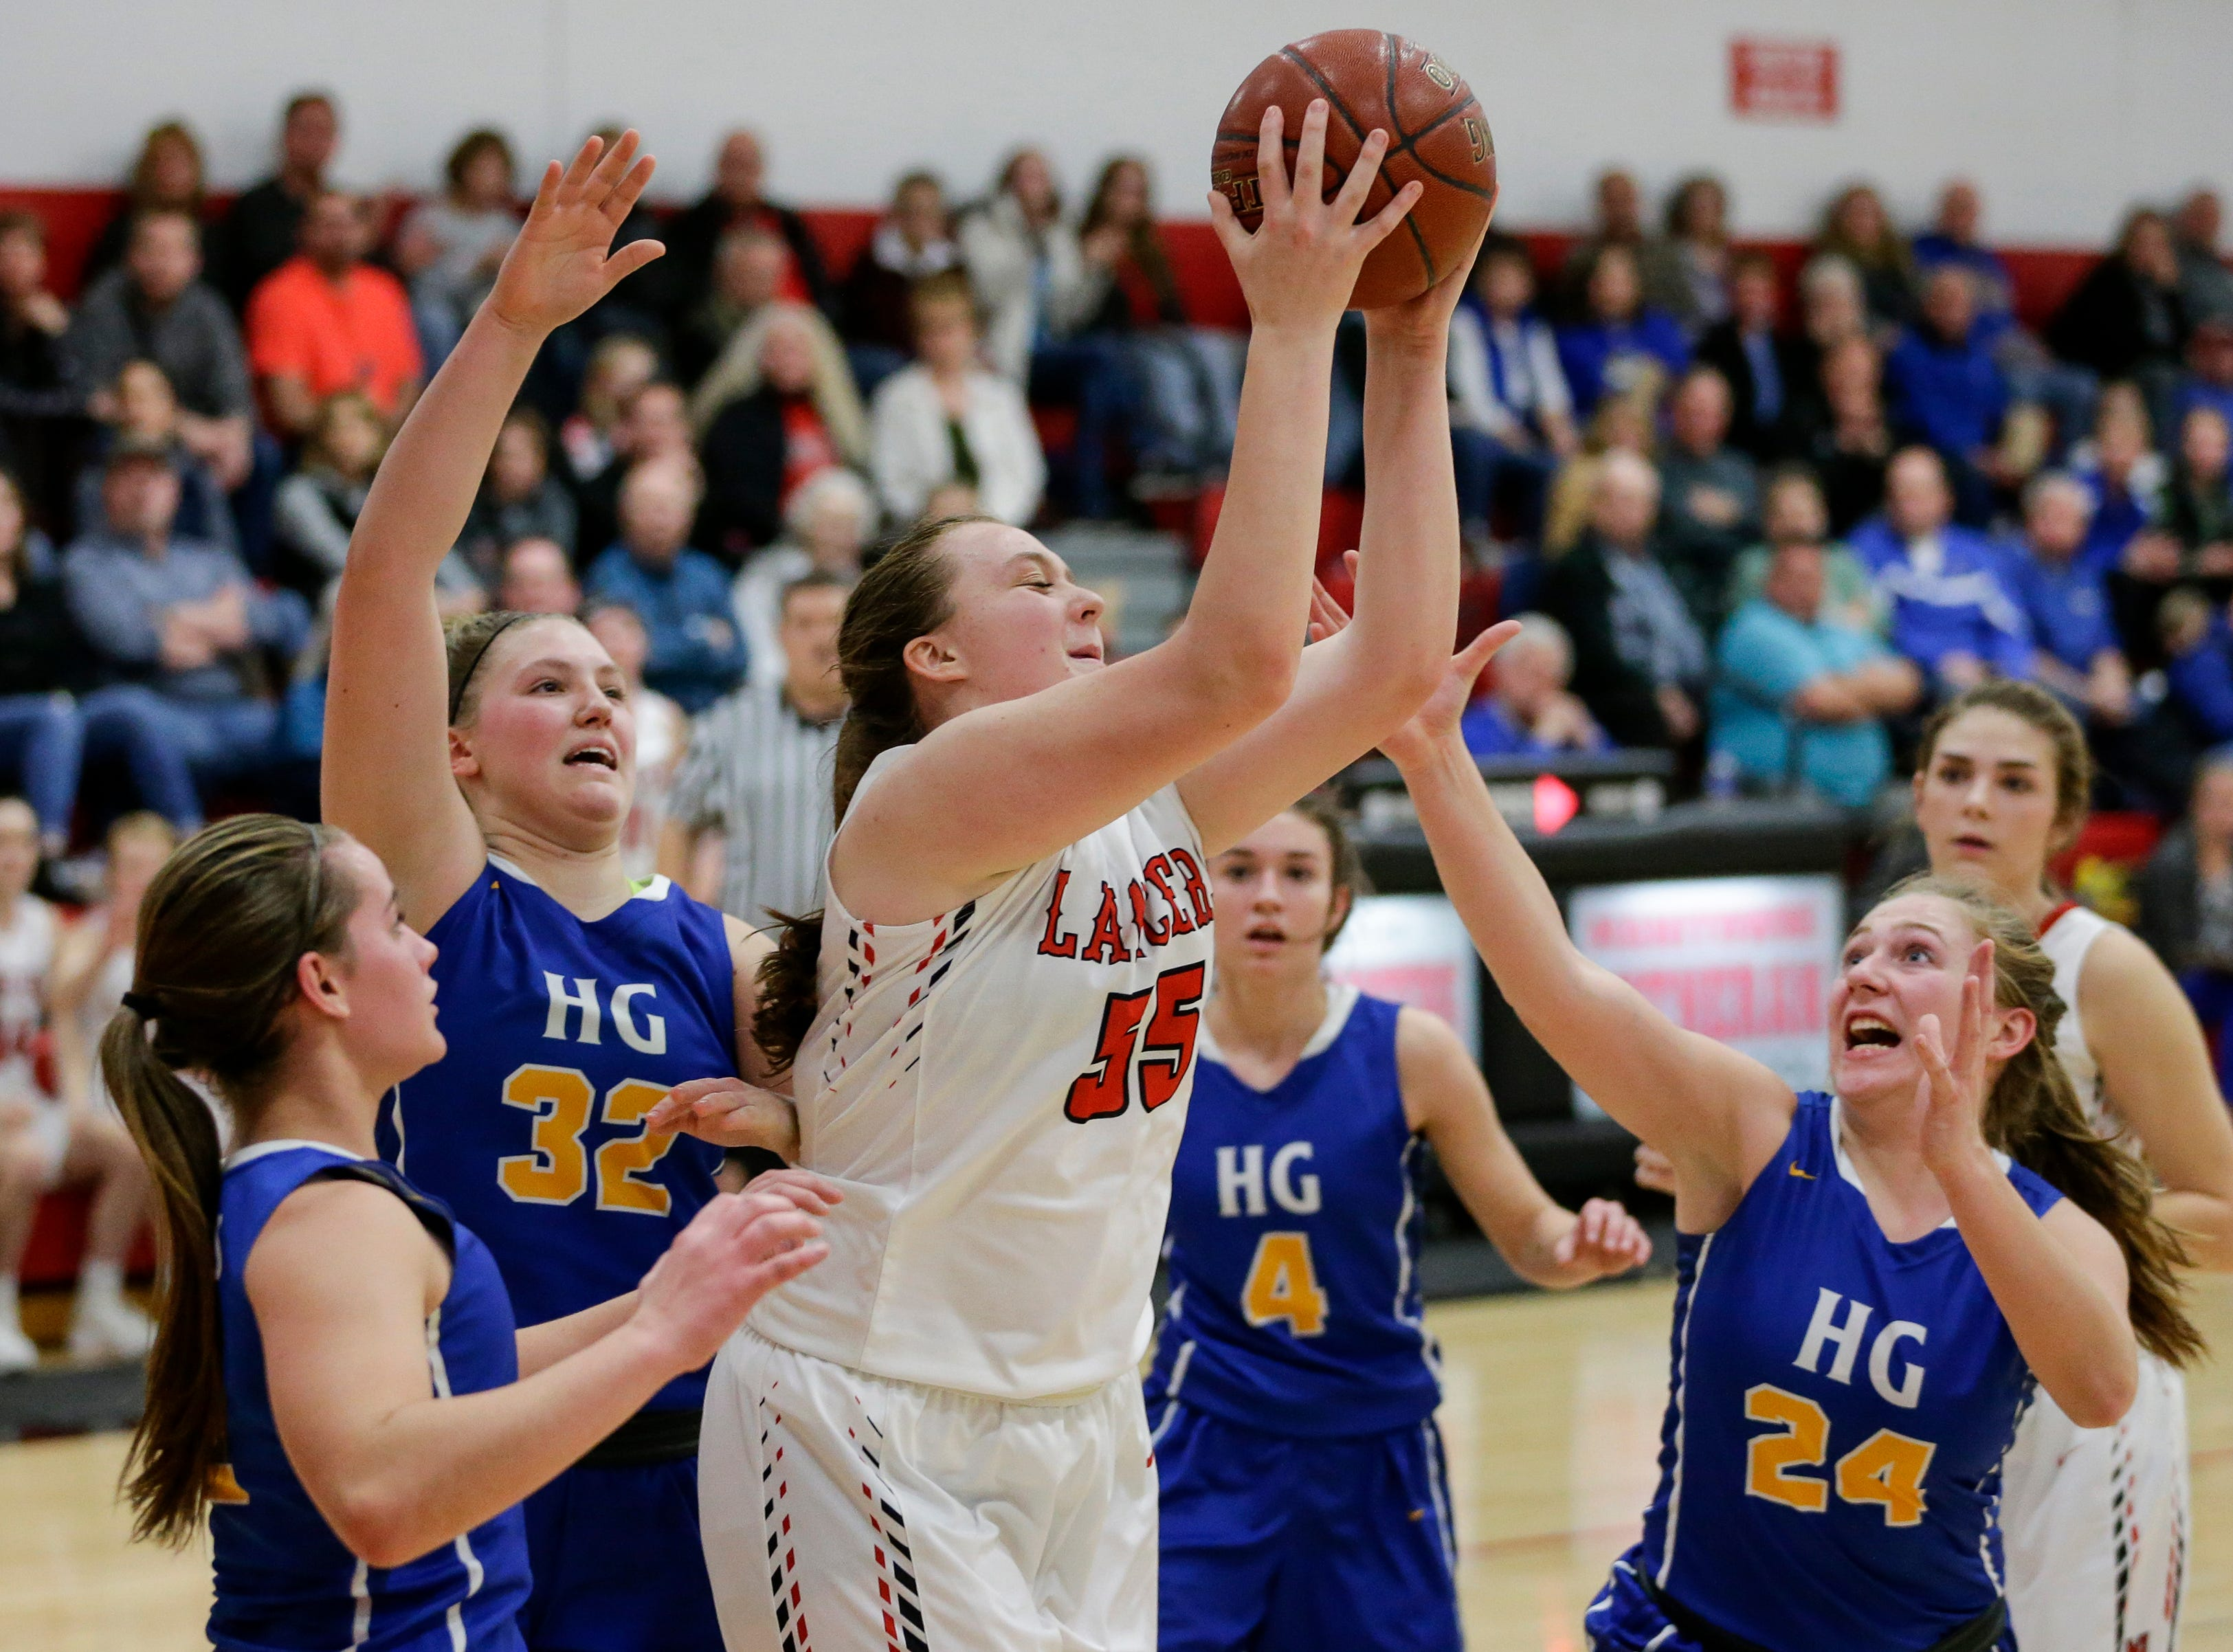 Manitowoc Lutheran's MonRaye Ermis rebounds against Howards Grove at Manitowoc Lutheran High School Tuesday, December 18, 2018, in Manitowoc, Wis. Joshua Clark/USA TODAY NETWORK-Wisconsin